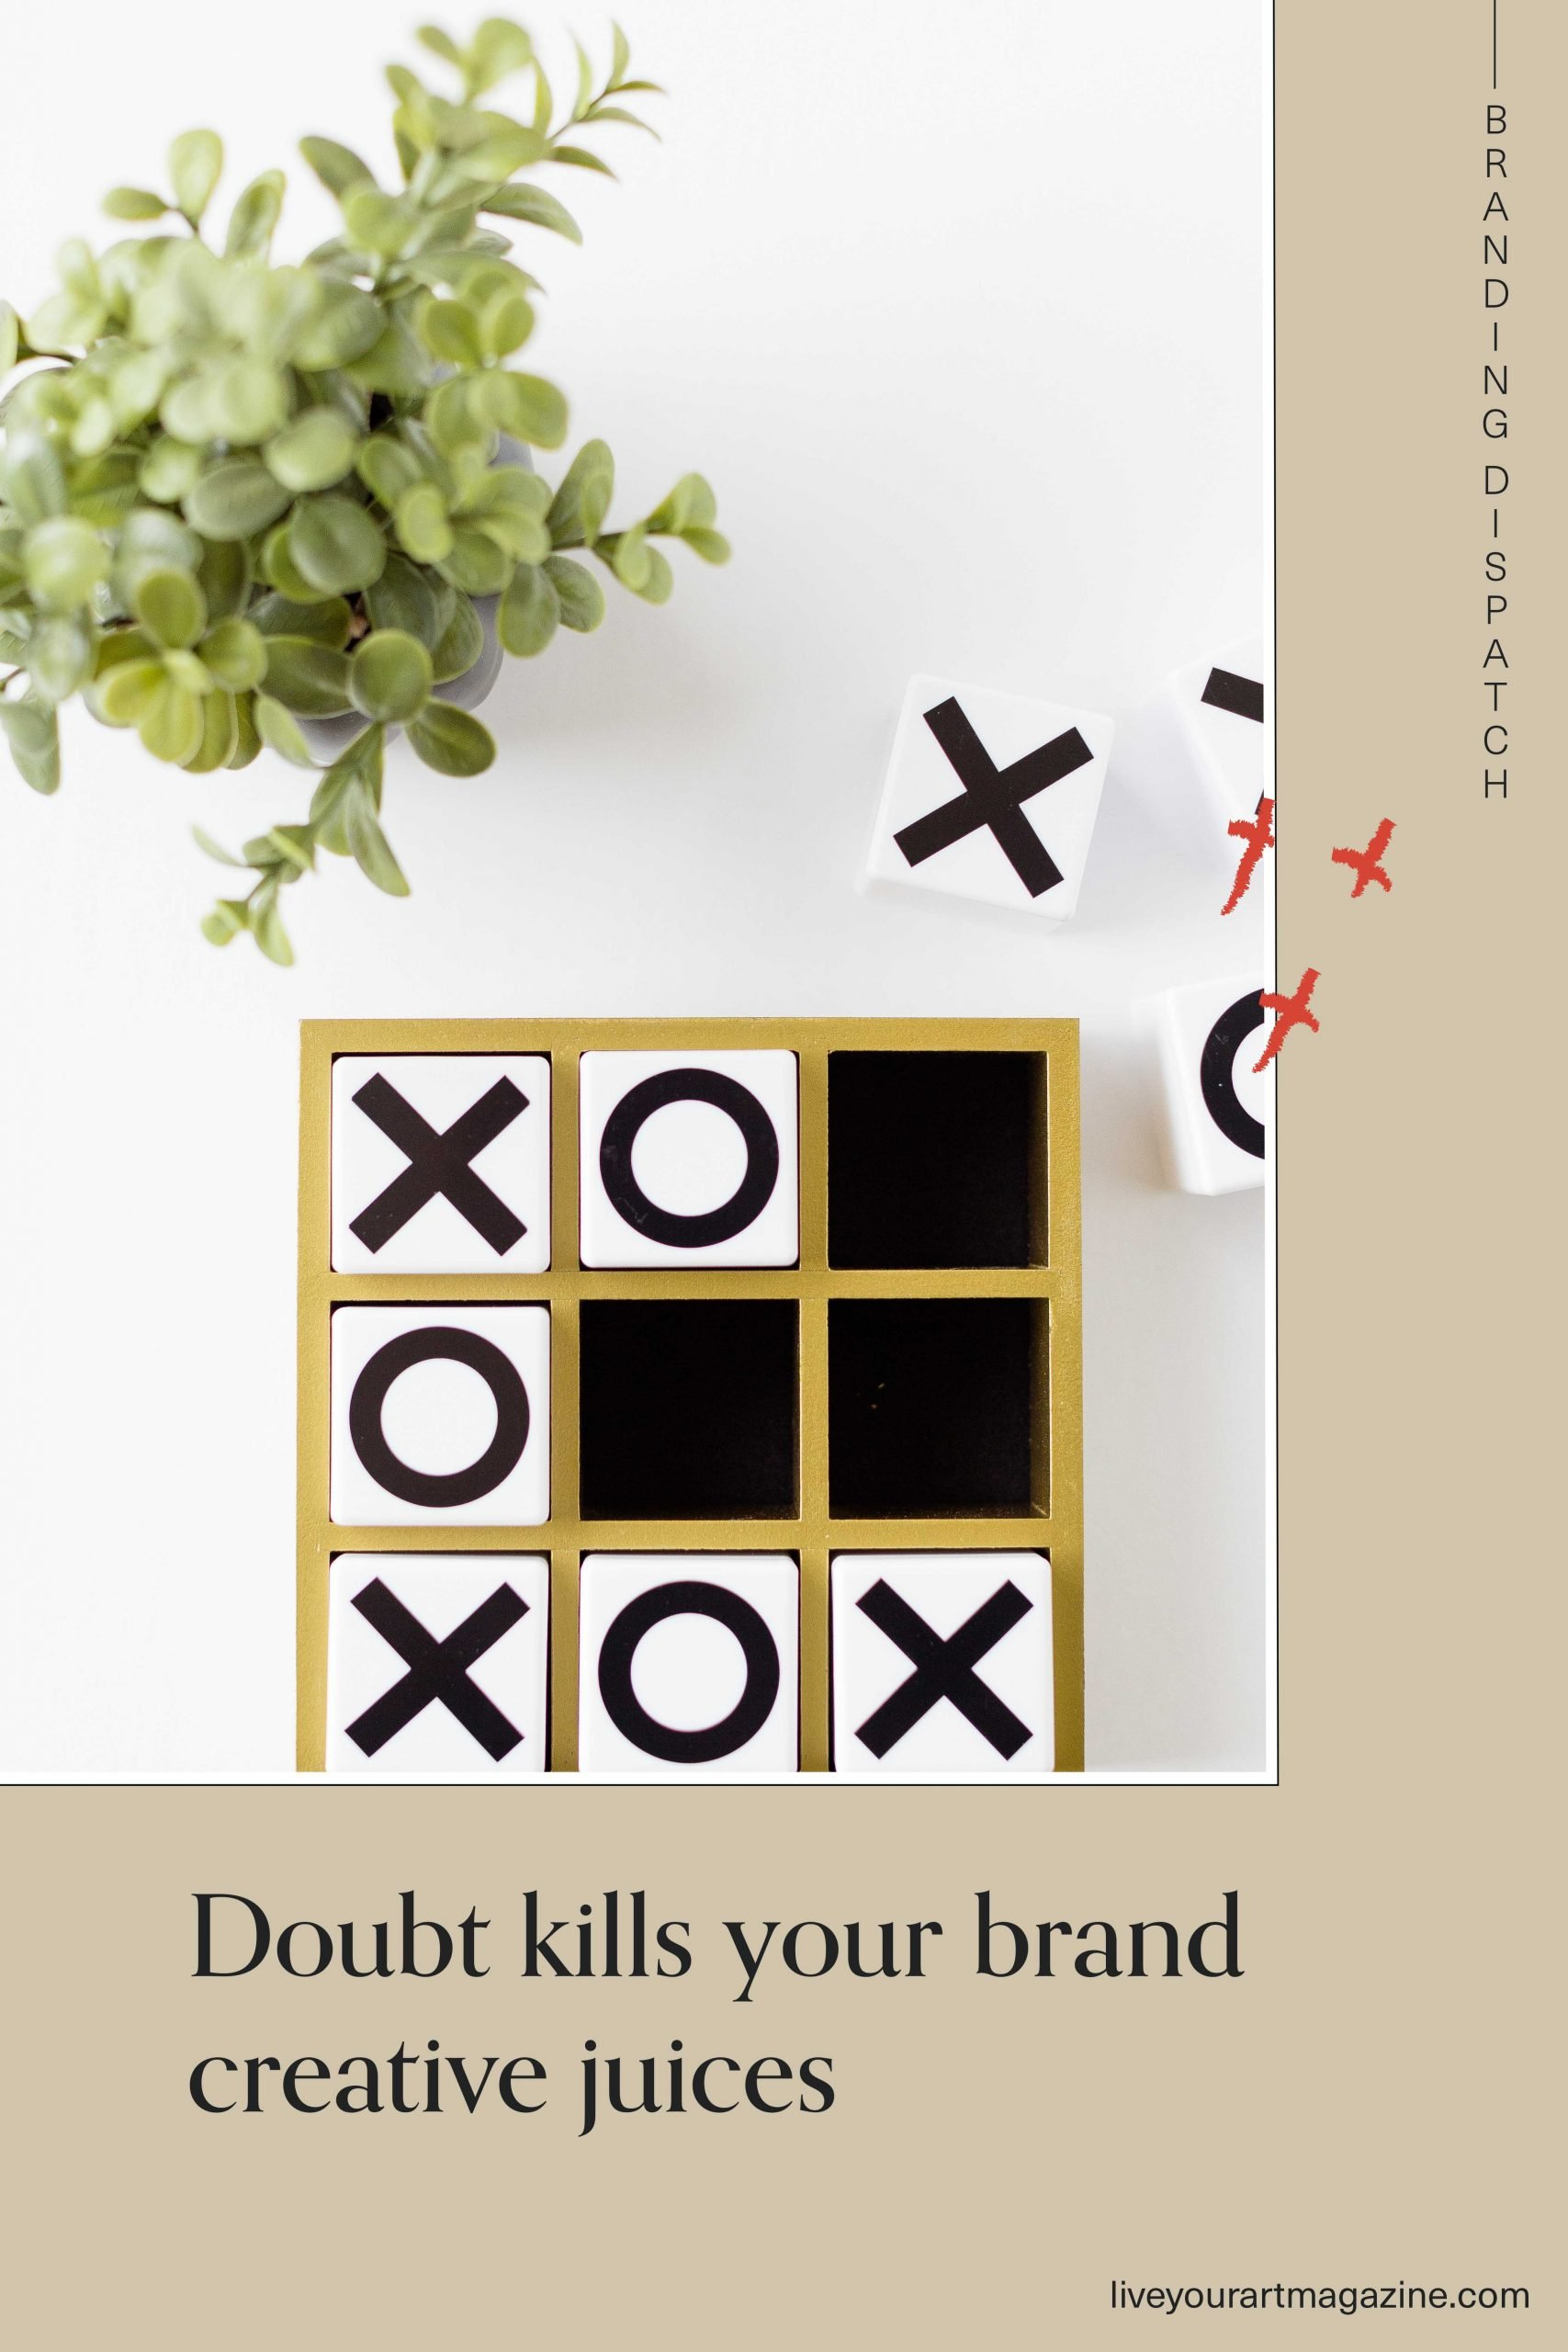 Doubt kills your brand creative juices